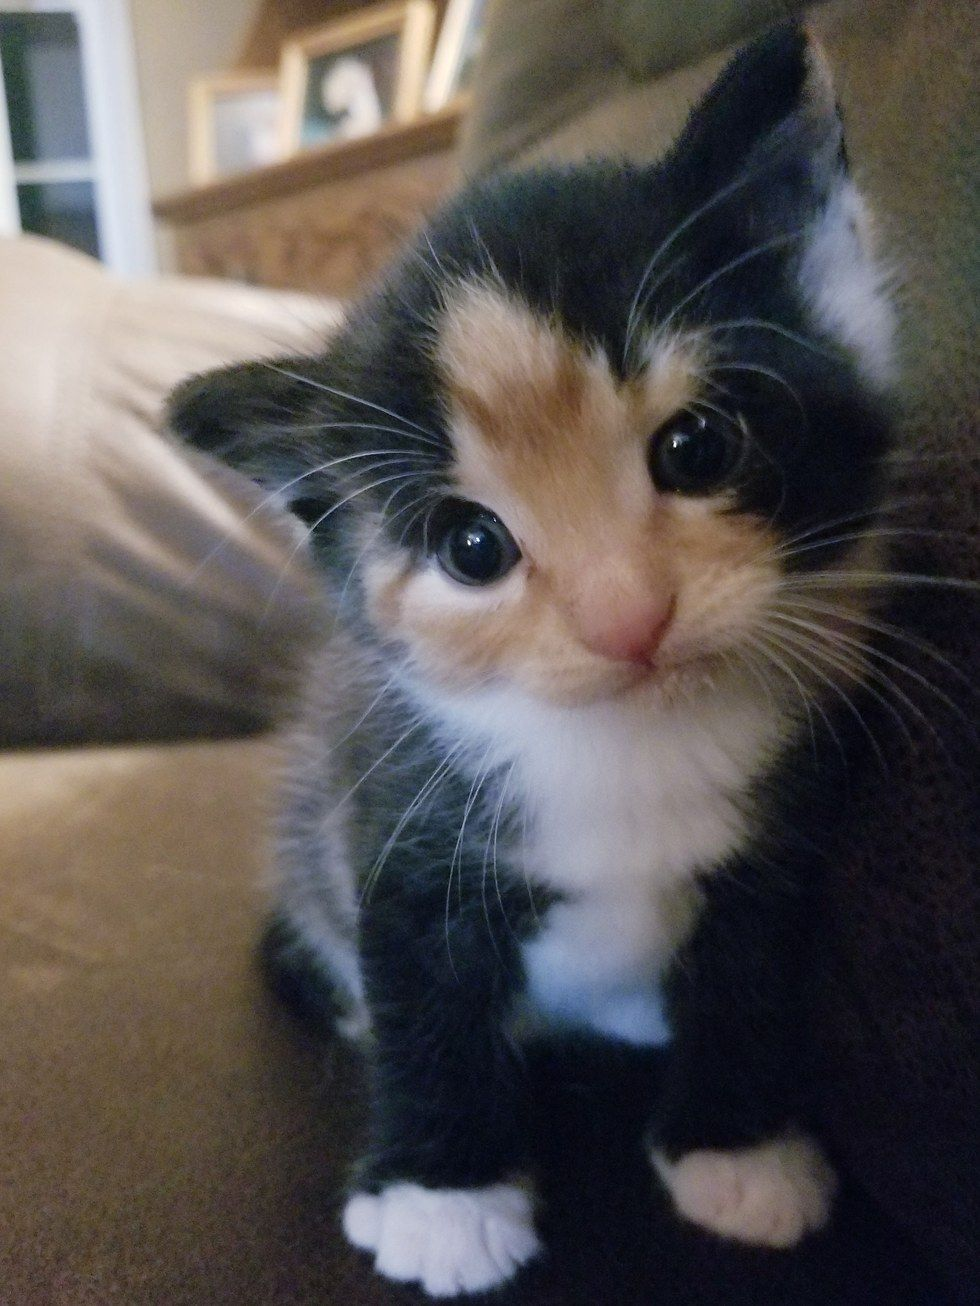 This little kitten is nothing short of a miracle. She was